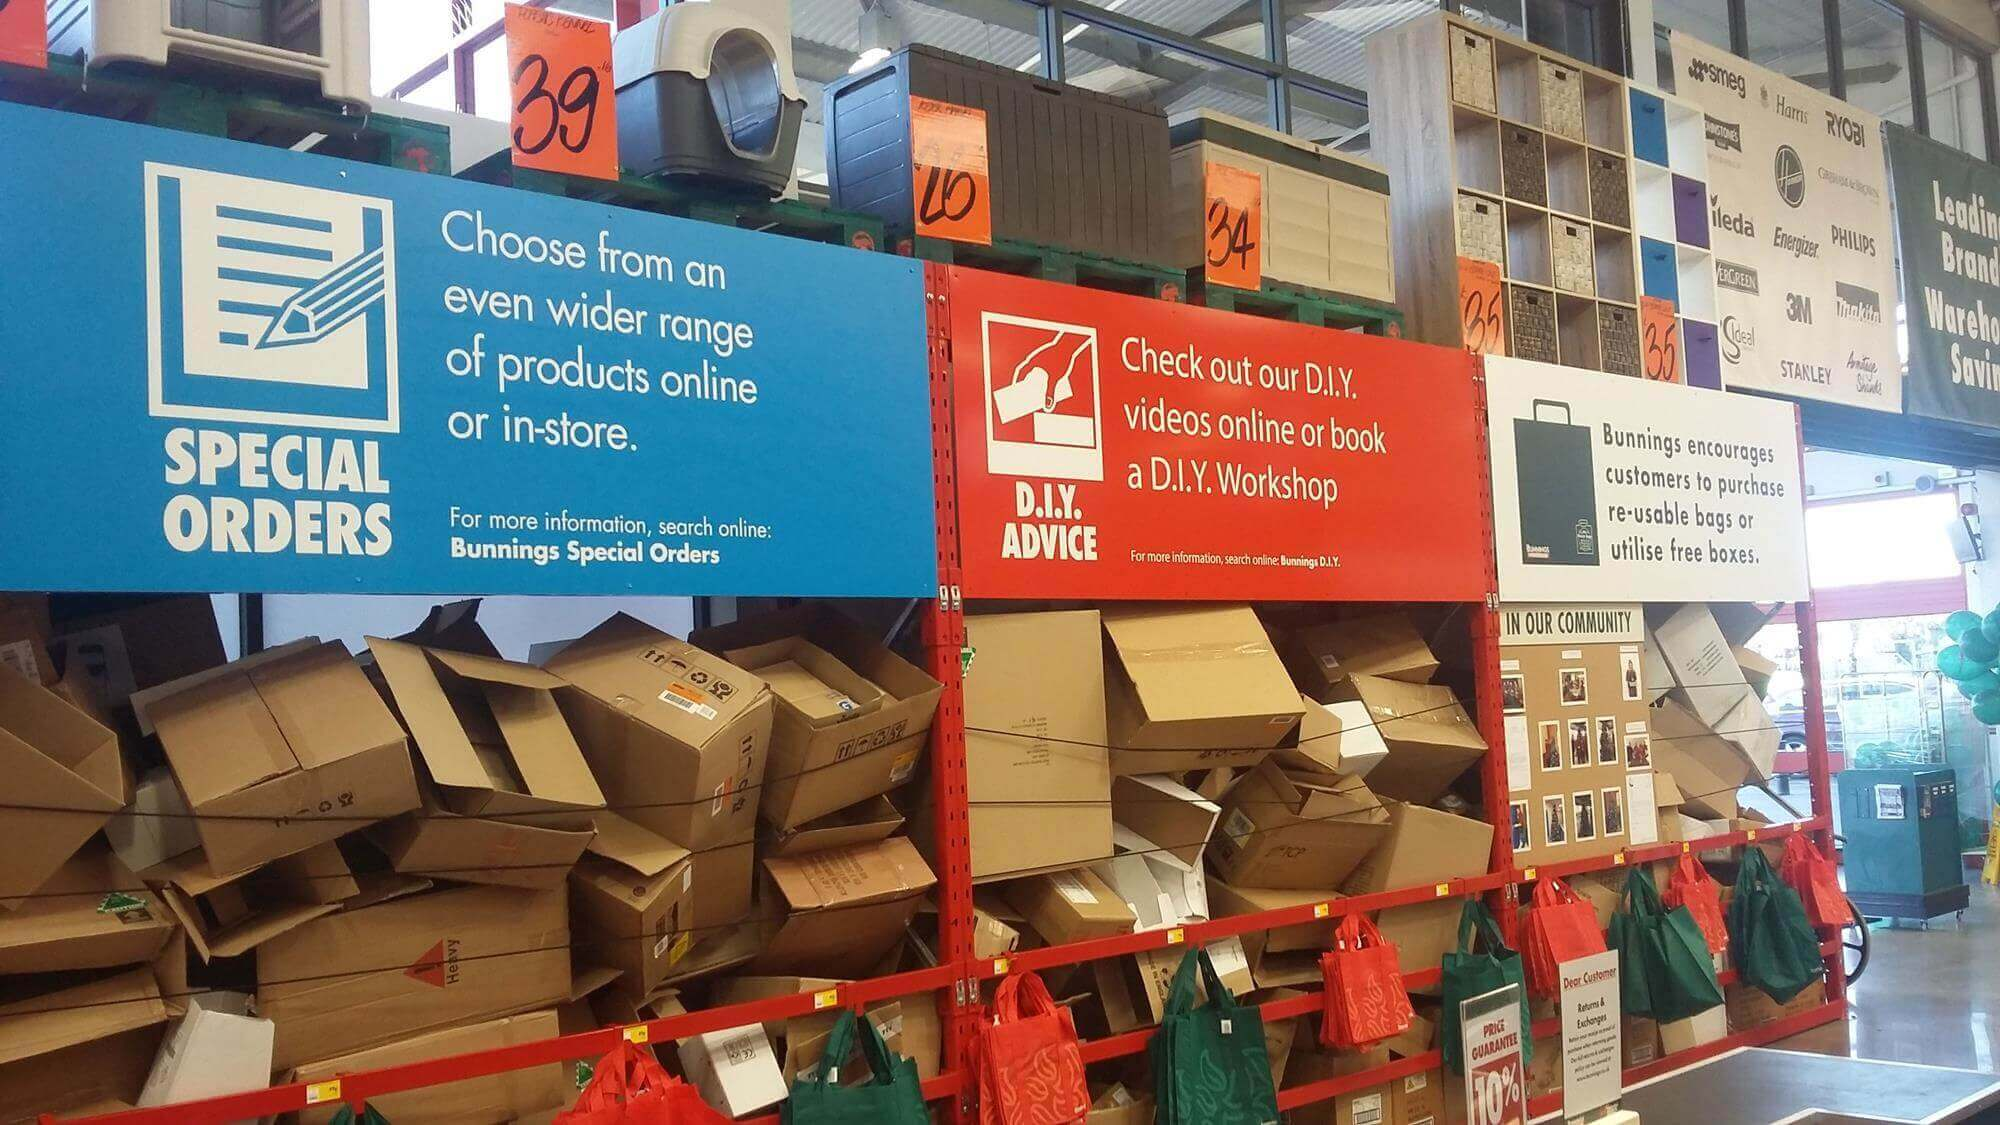 Bunnings Packing Boxes This Retail Brand Never Used Platic Bags And Has A